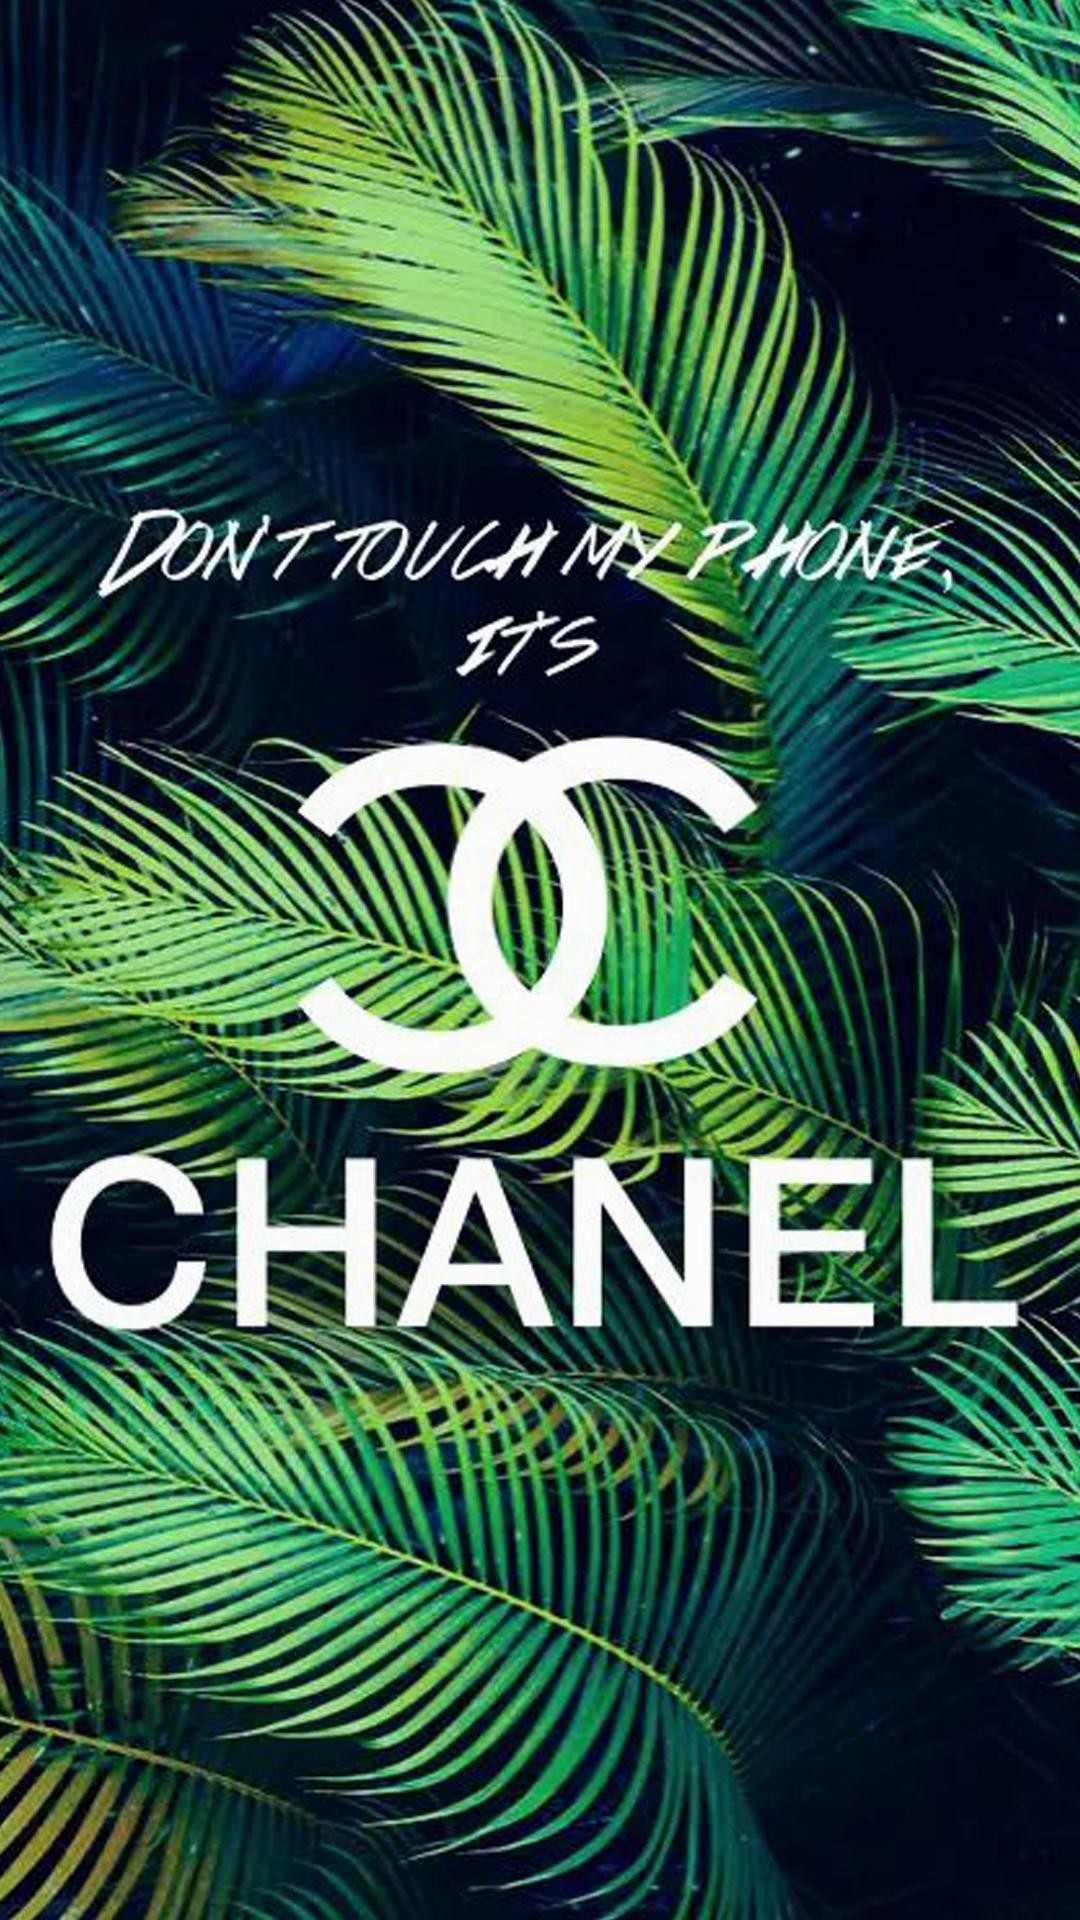 Wiki Chanel Iphone Backgrounds Free Download Pic Chanel Wallpaper Iphone 1080x1920 Download Hd Wallpaper Wallpapertip